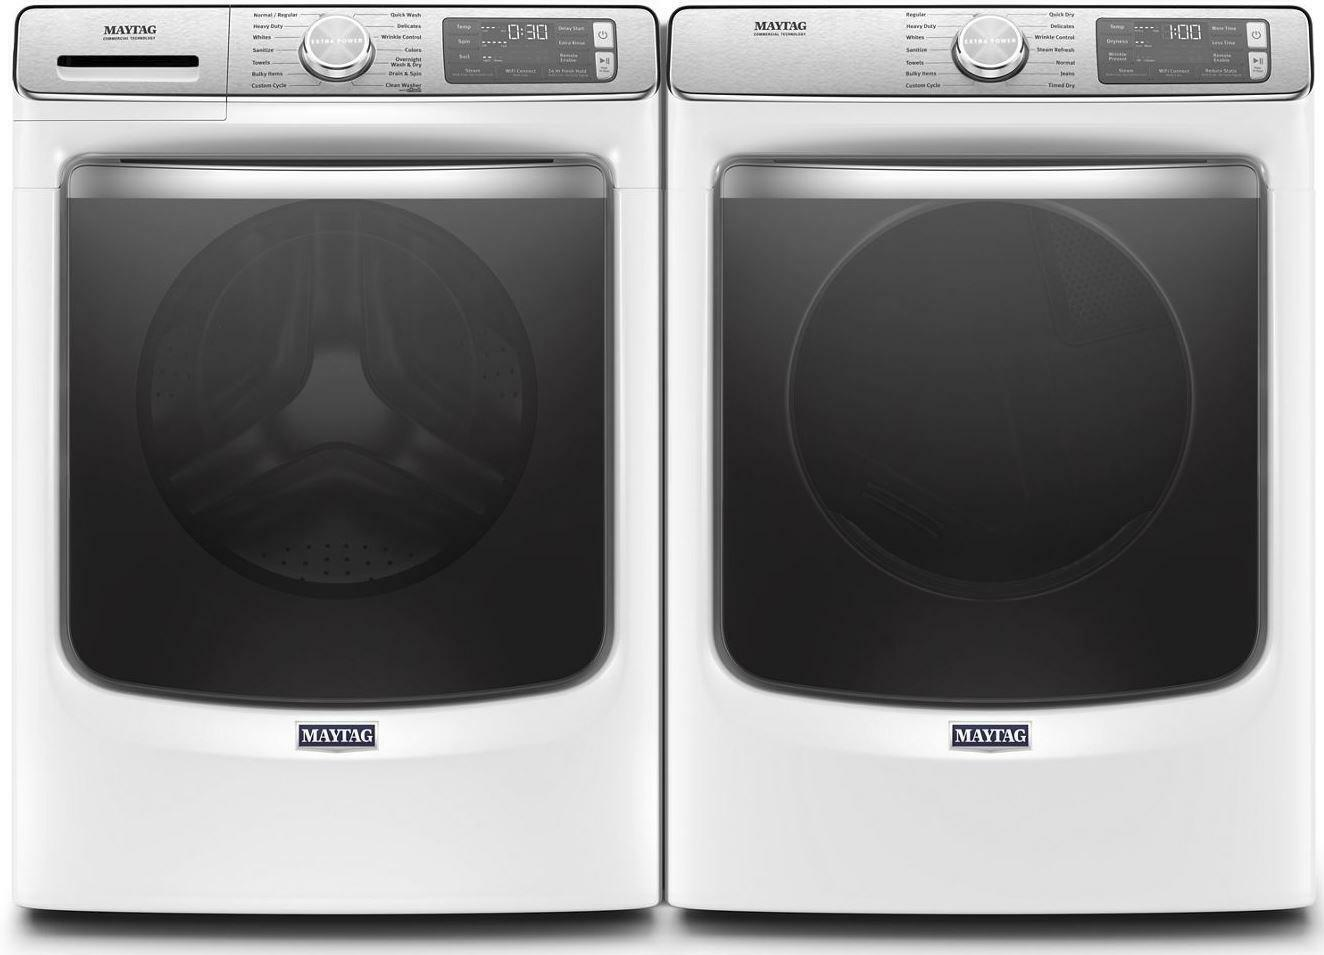 Maytag MHW8630HW 5 cu. ft. Front Load Washer and MED8630HW E